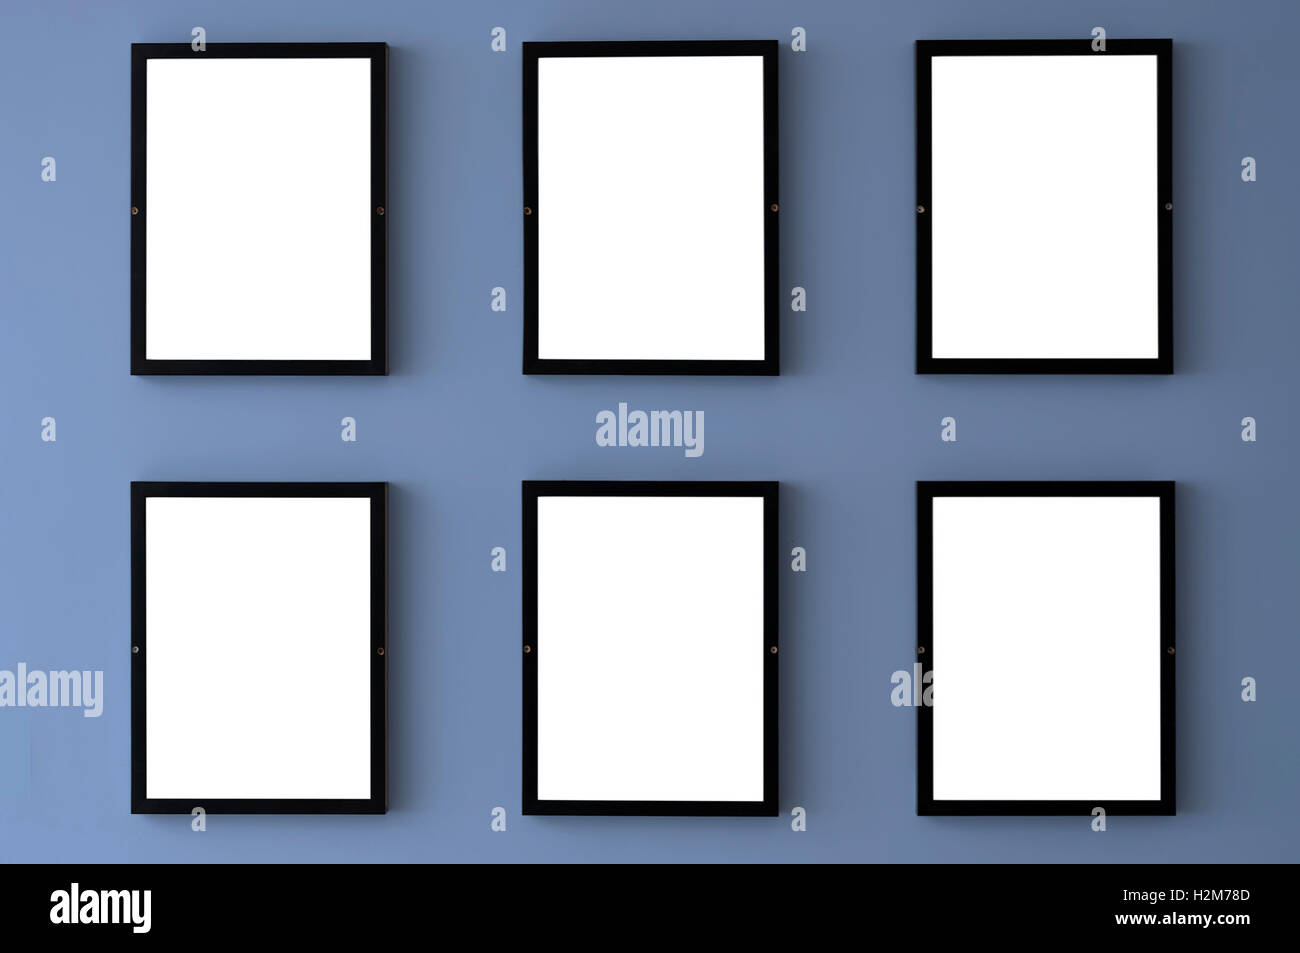 Six blank picture frames hang on a wall with the 2016 pantone color of serenity. - Stock Image